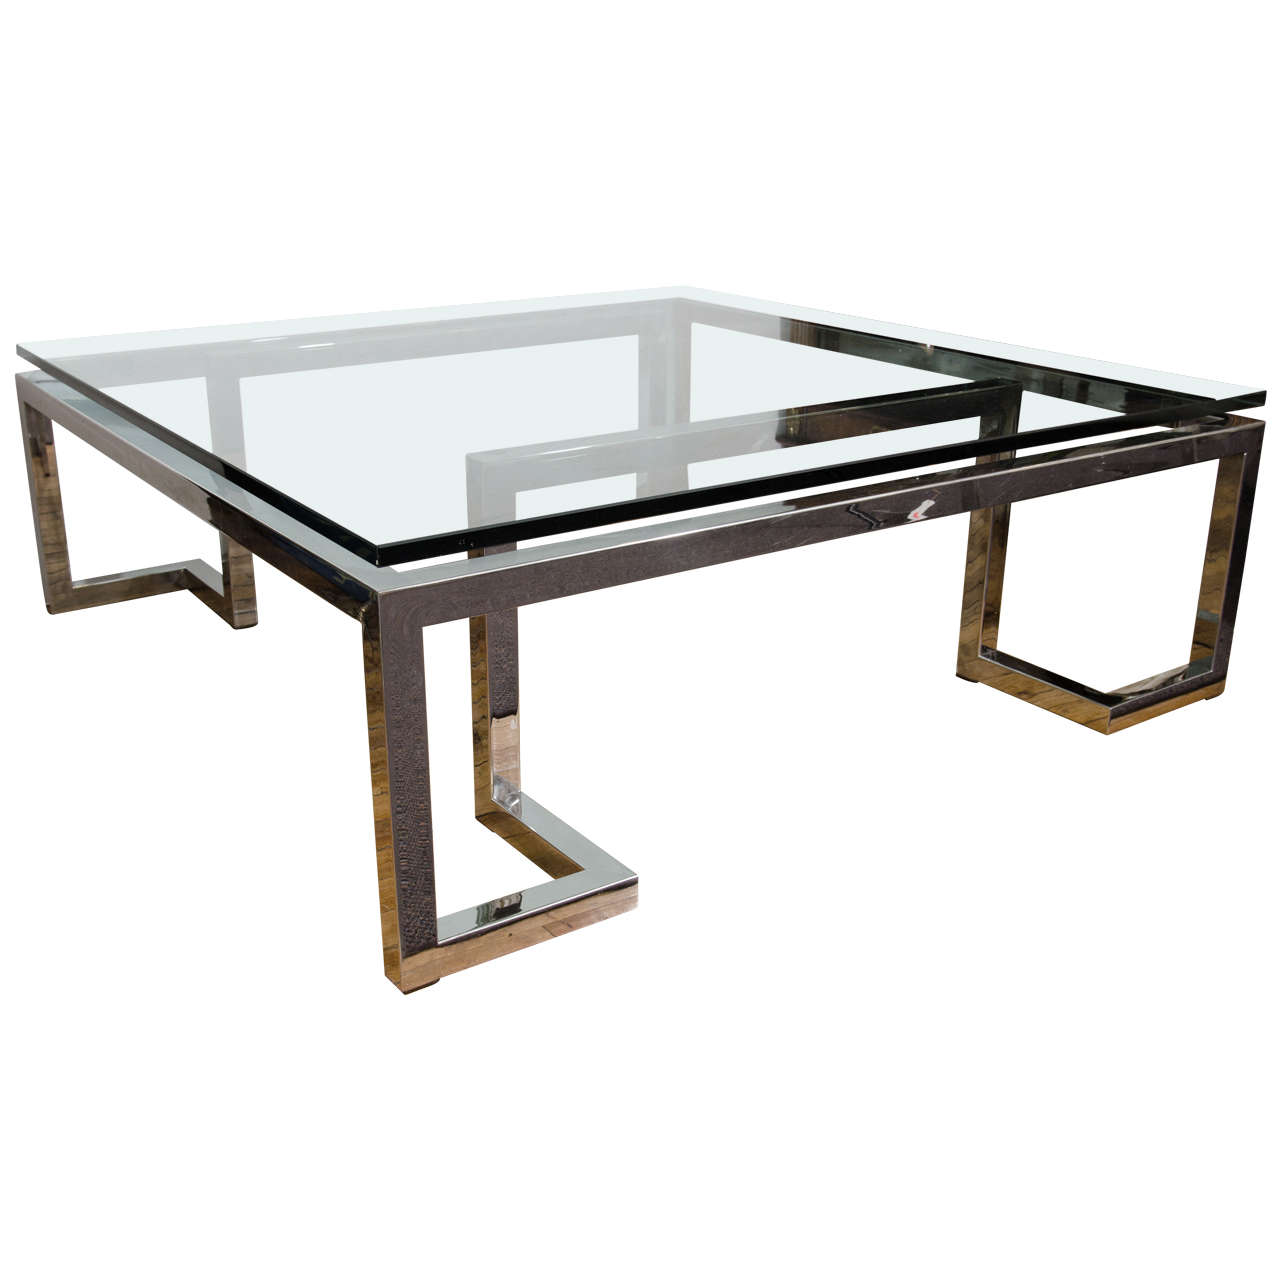 Midcentury glass top coffee or cocktail table with chrome geometric base at 1stdibs Glass coffee table base